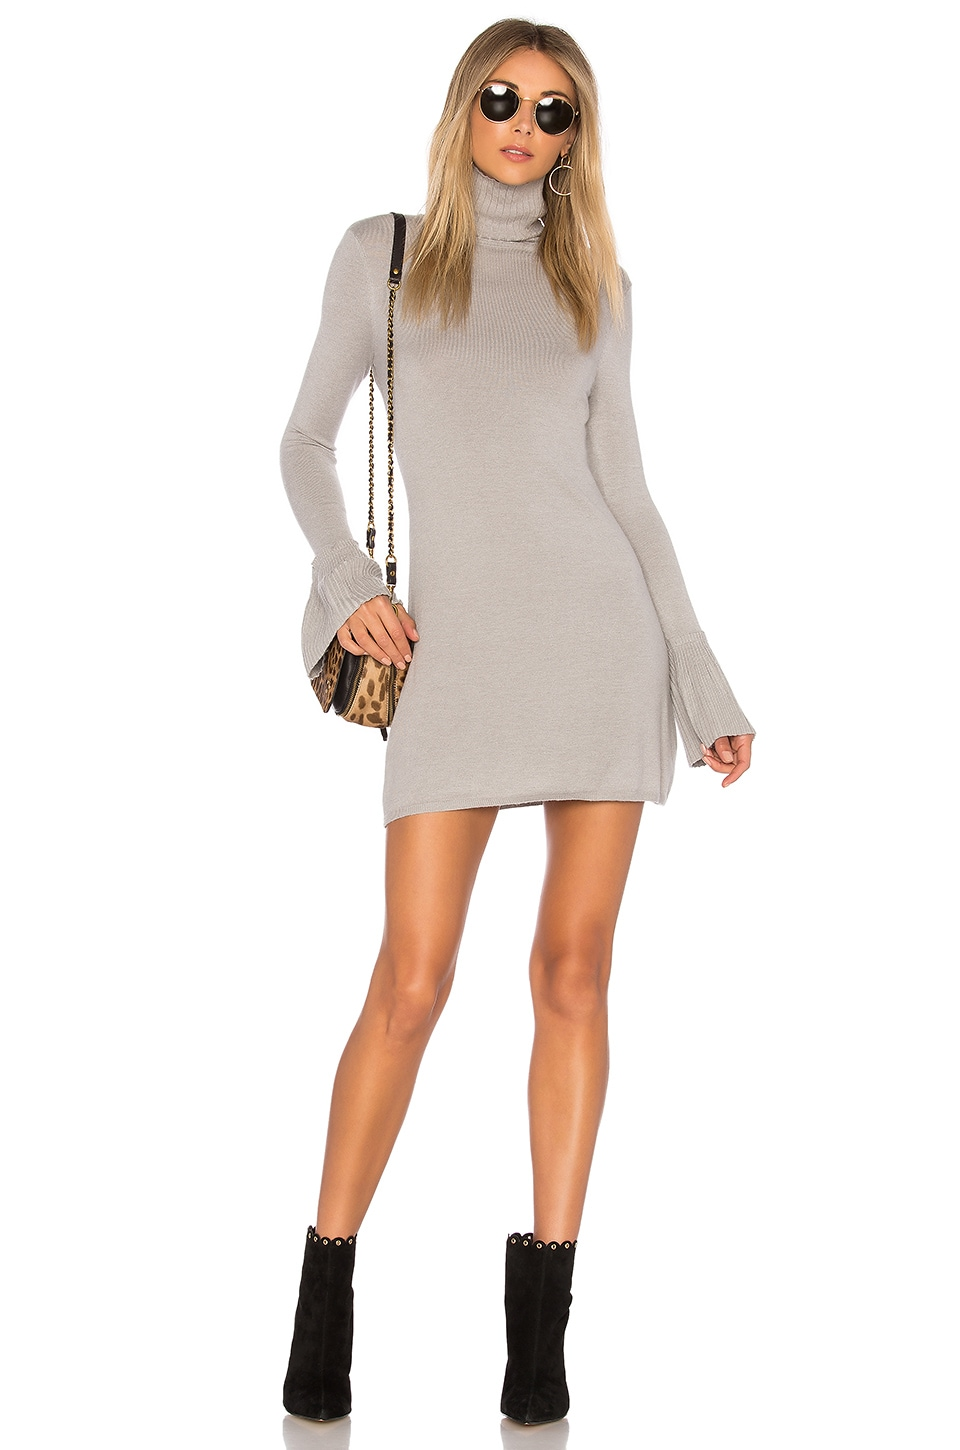 House of Harlow 1960 x REVOLVE Marni Dress in Dust